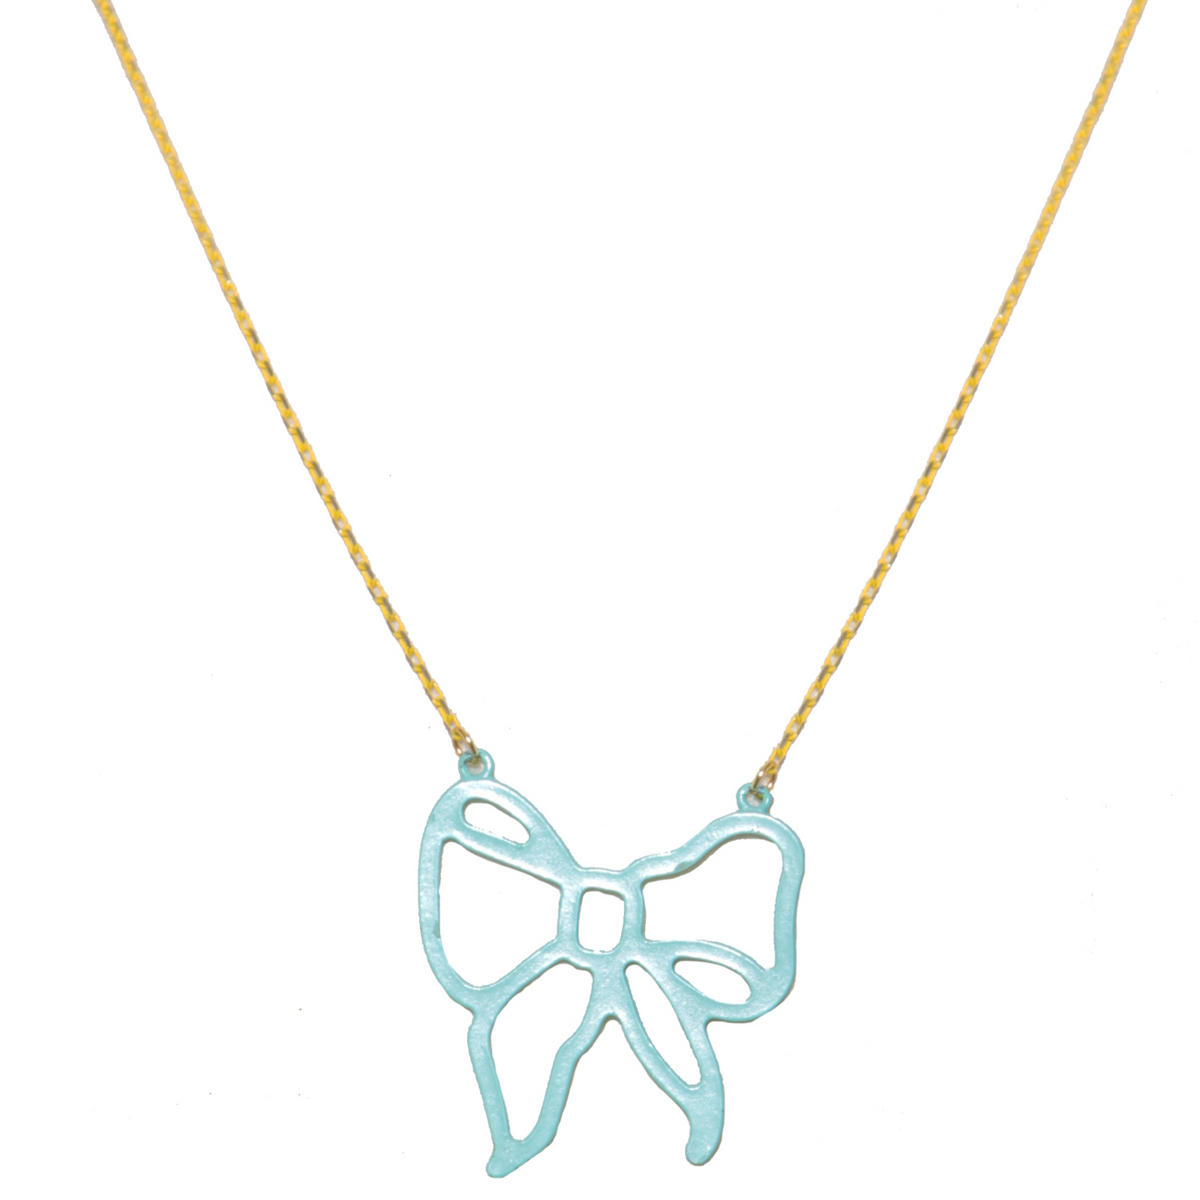 Green Bow Pendant Necklace Preview